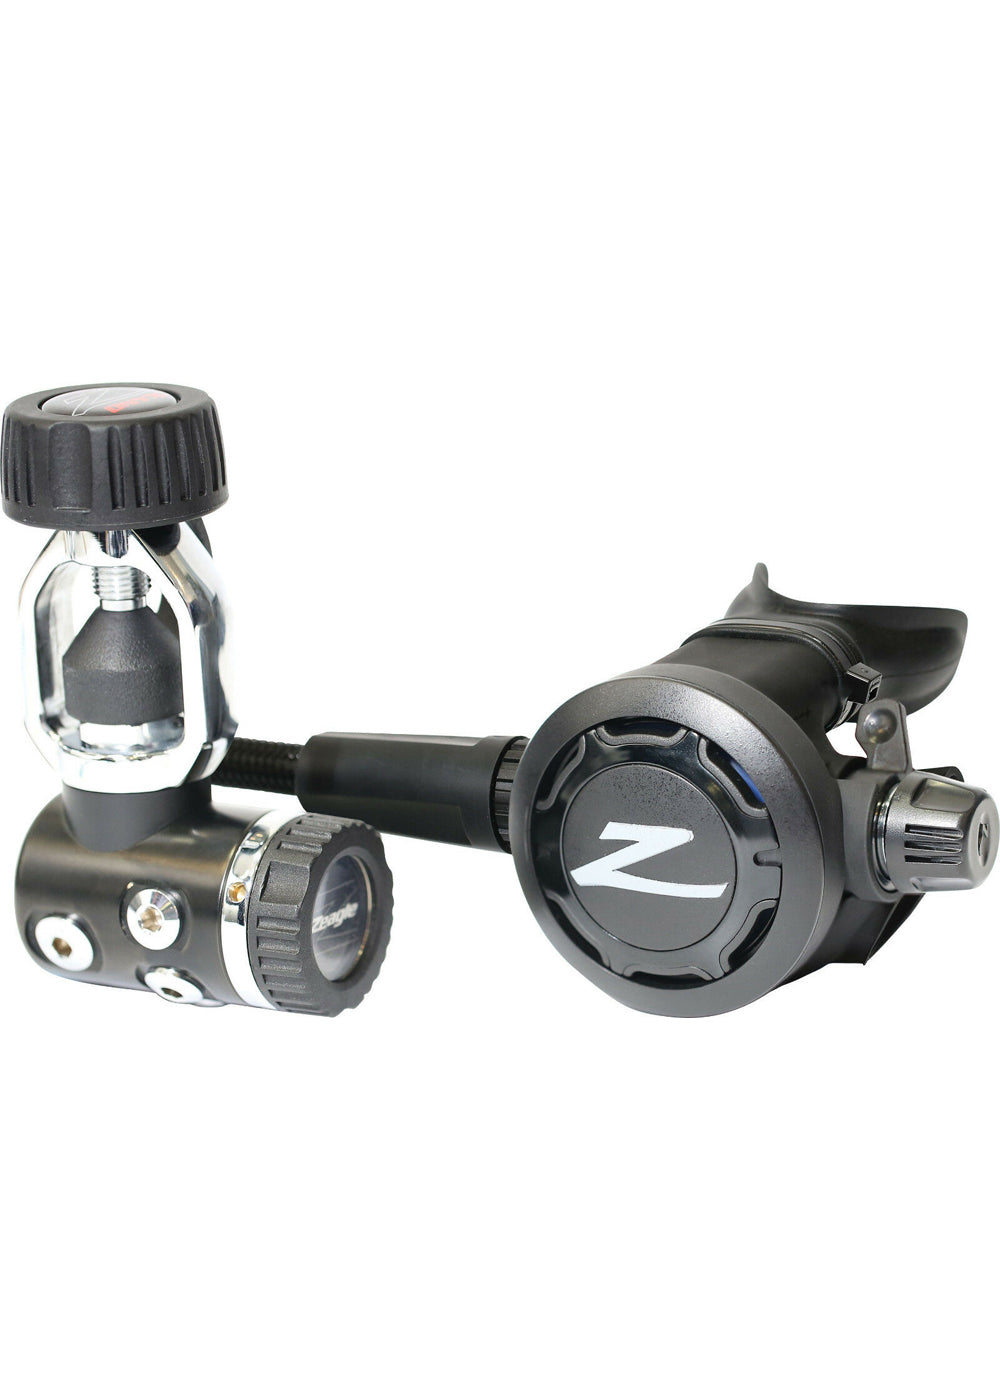 Zeagle Onyx II Regulator - Yoke